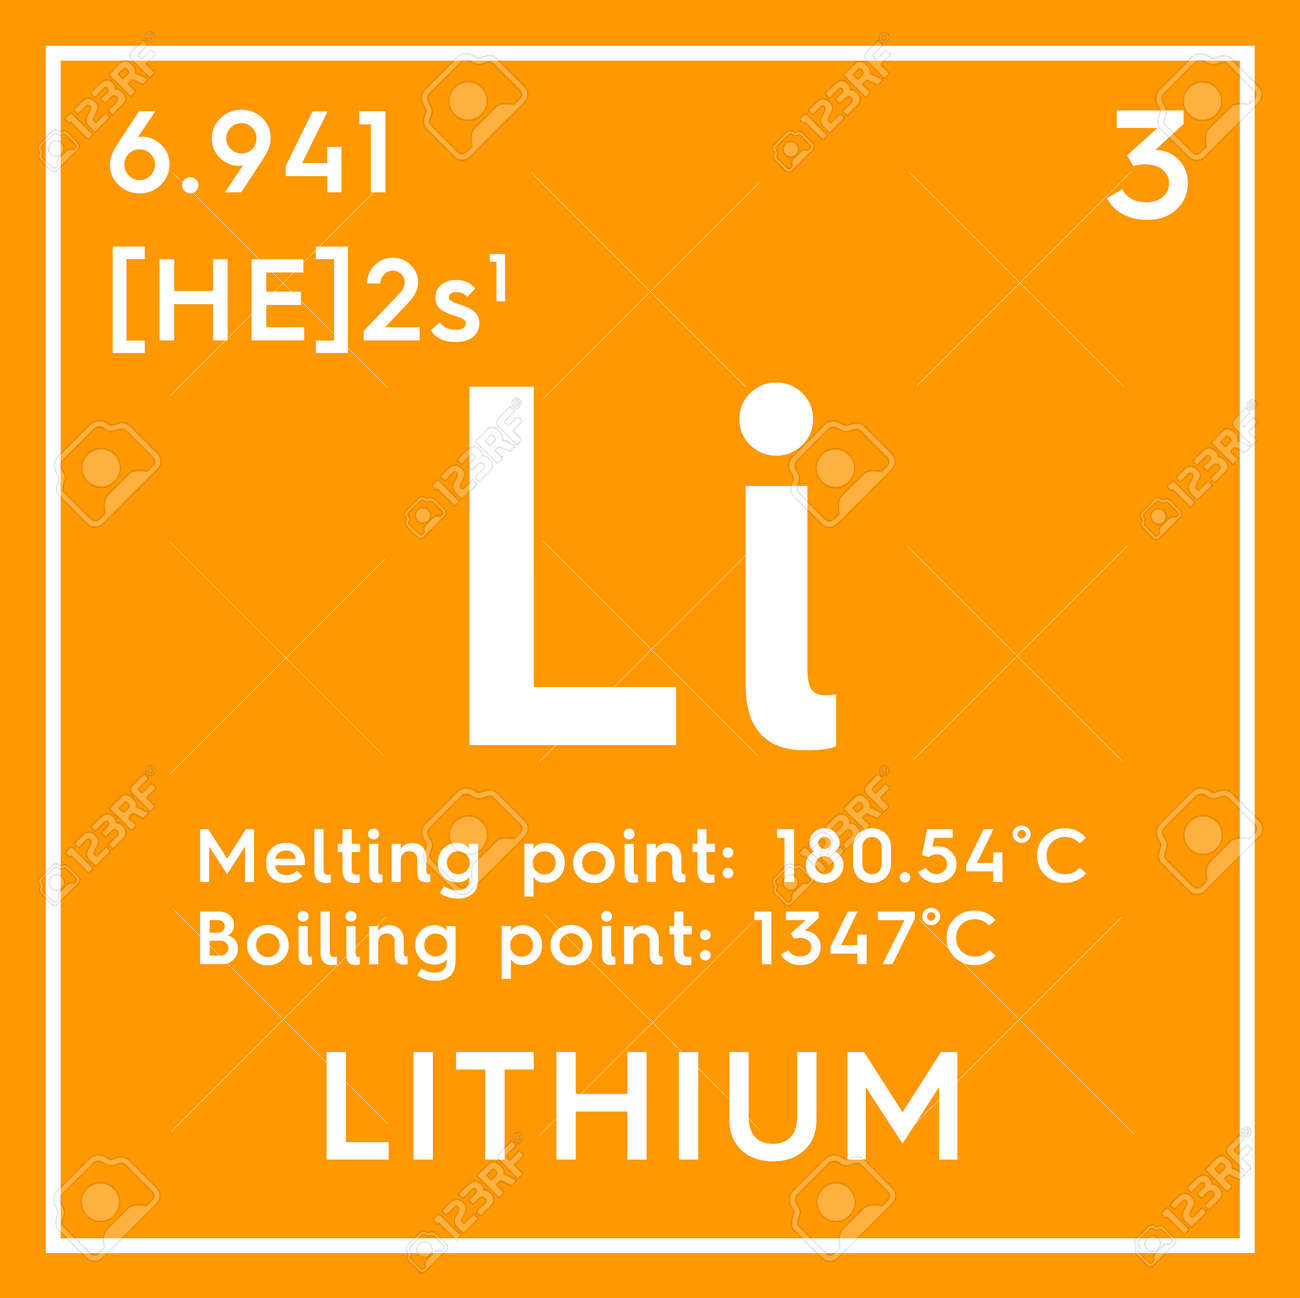 Periodic table of elements melting points image collections periodic table of elements melting points gallery periodic table lithium alkali metals chemical element of mendeleevs gamestrikefo Gallery